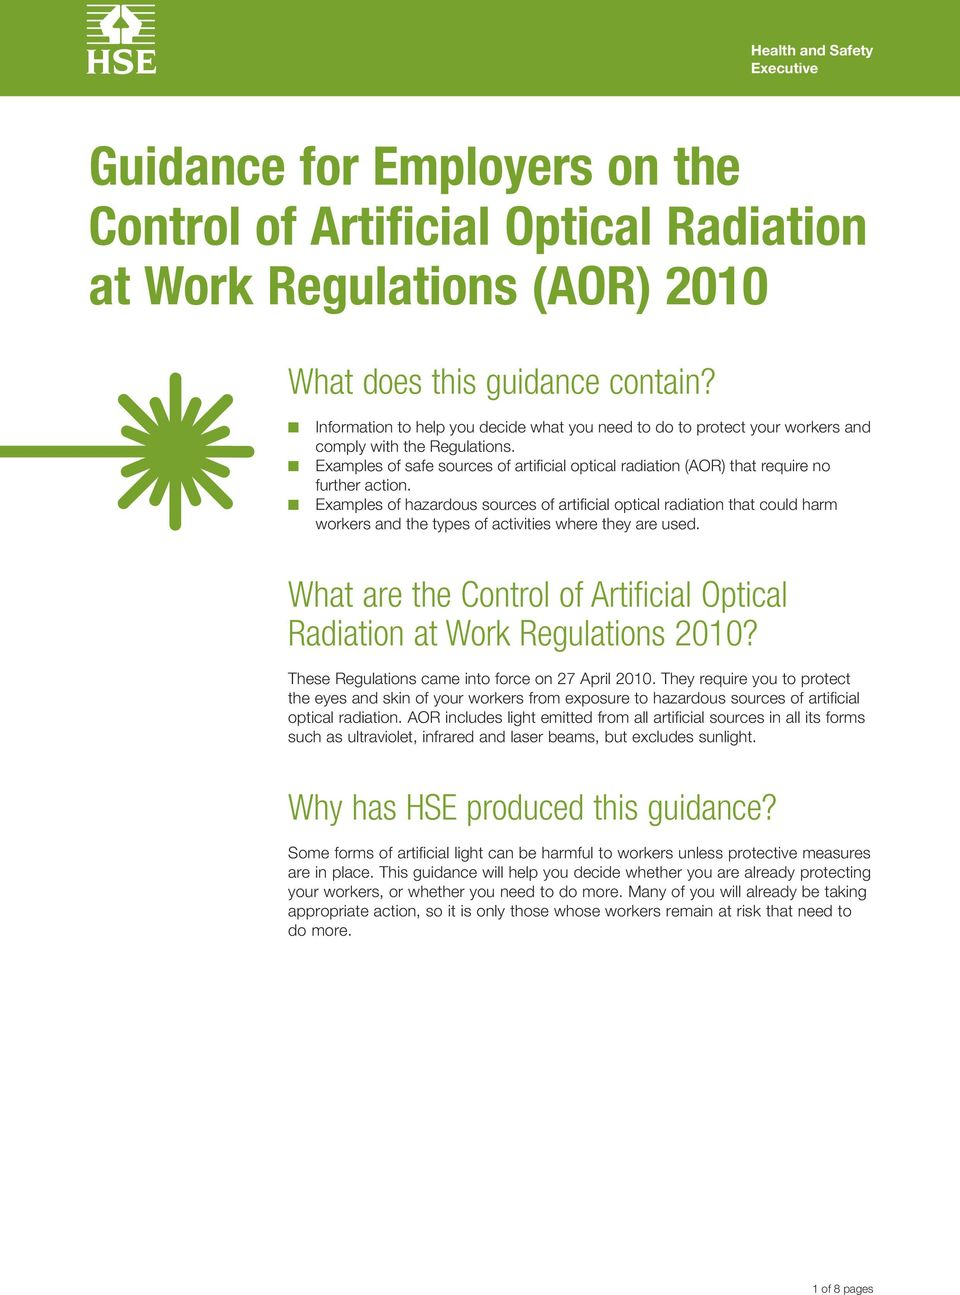 Examples of safe sources of artificial optical radiation (AOR) that require no further action.